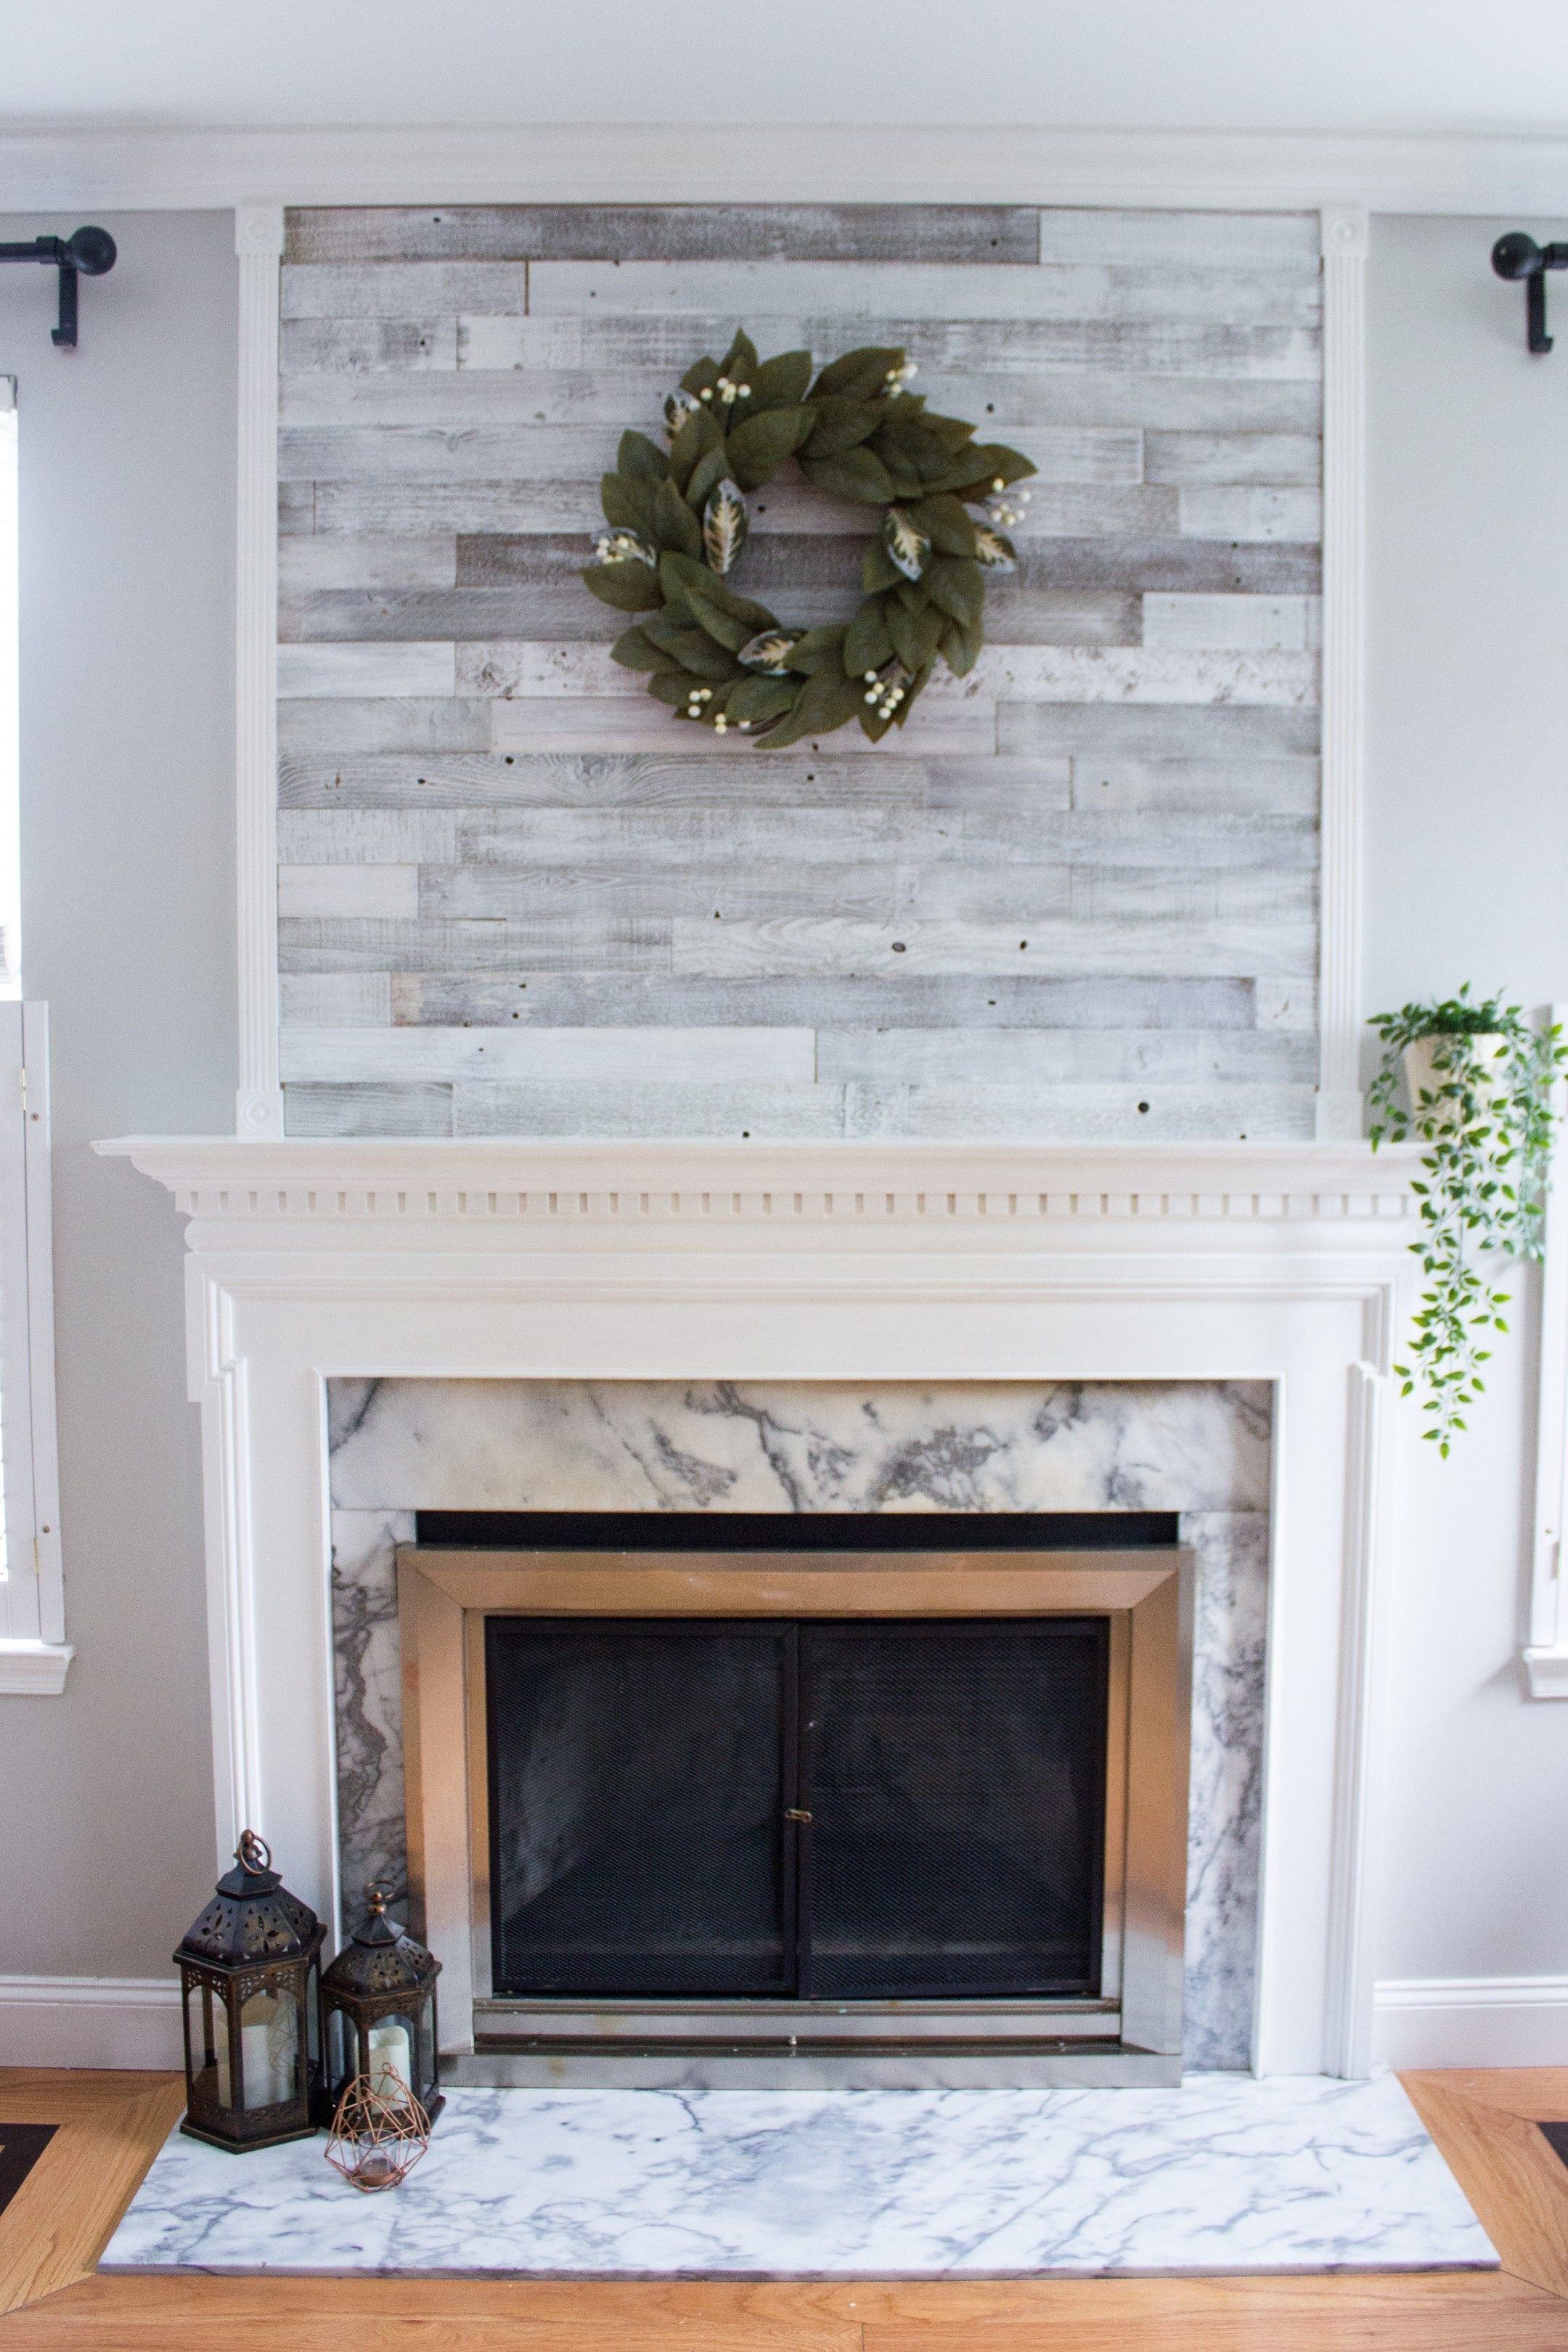 How To Shop Online For Fireplaces Stoves Accessories